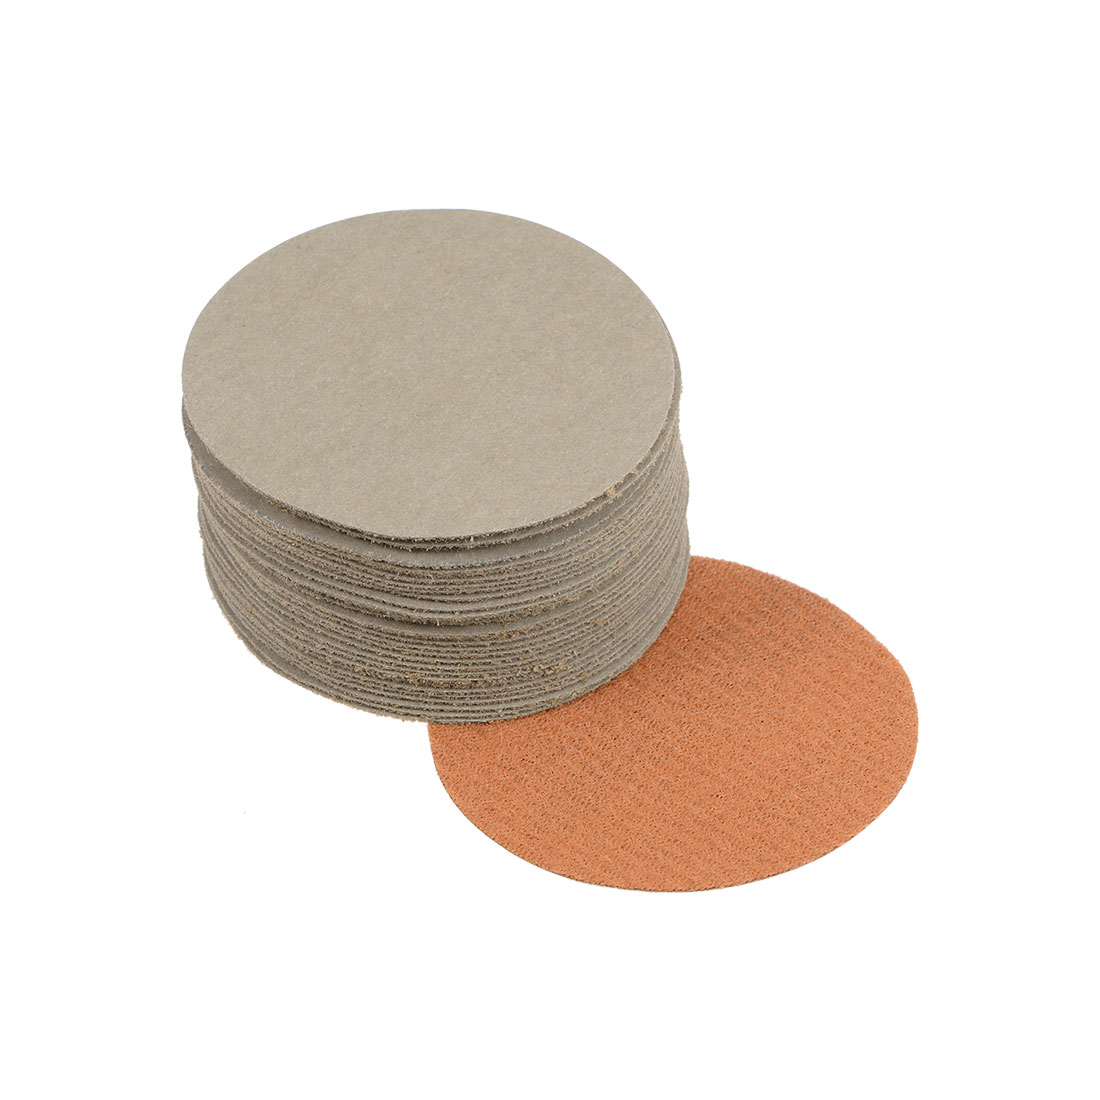 2 inch Wet Dry Discs 10000 Grit Hook and Loop Sanding Disc Silicon Carbide 30pcs